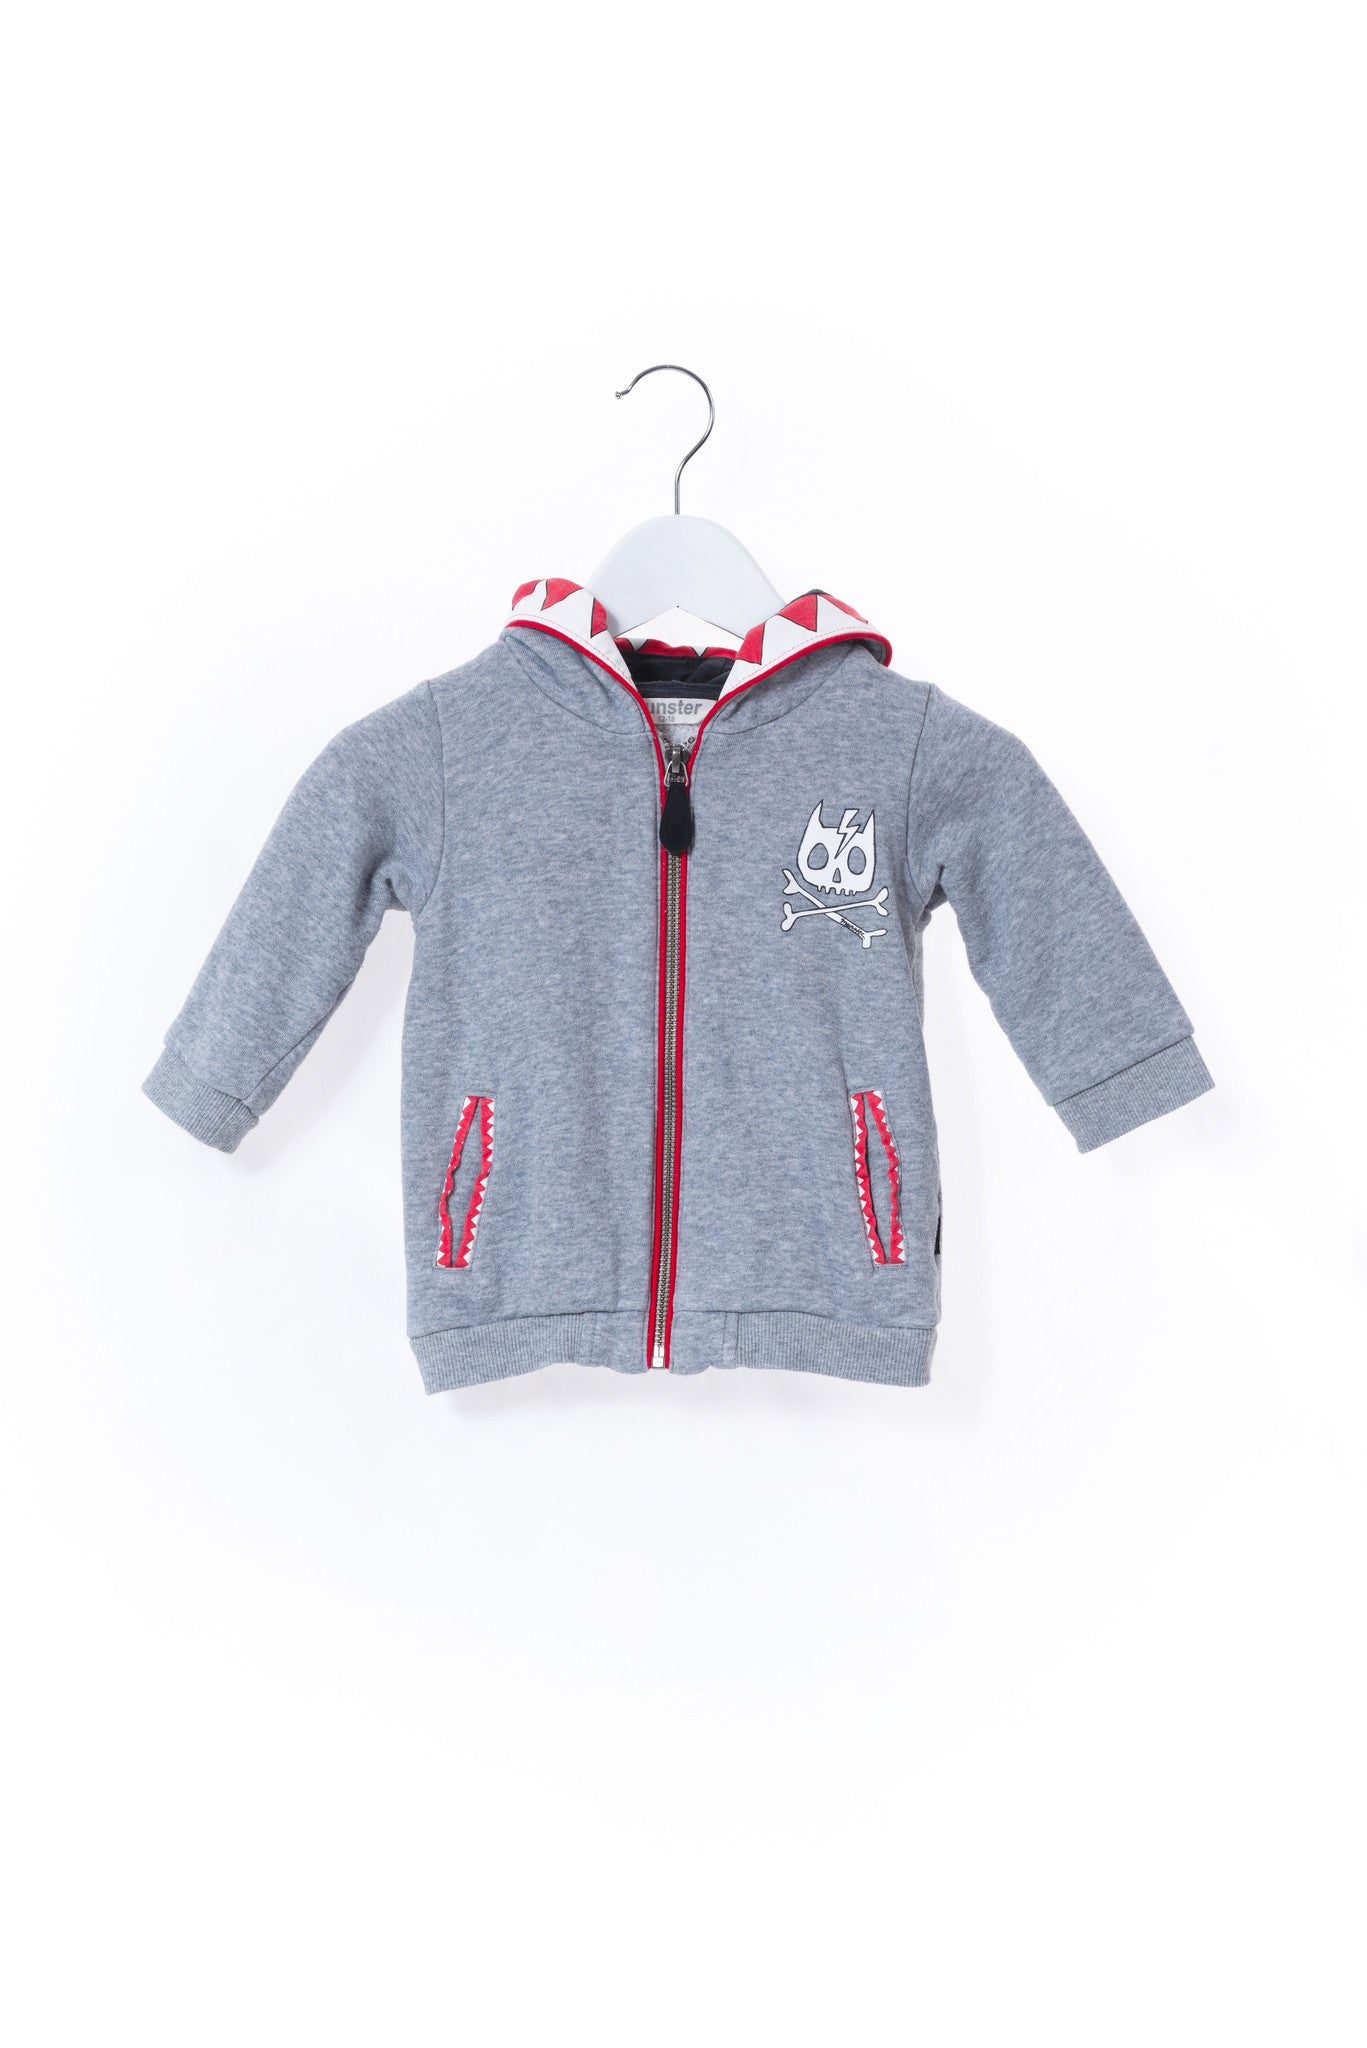 Sweatshirt 12-18M, Munster at Retykle - Online Baby & Kids Clothing Up to 90% Off